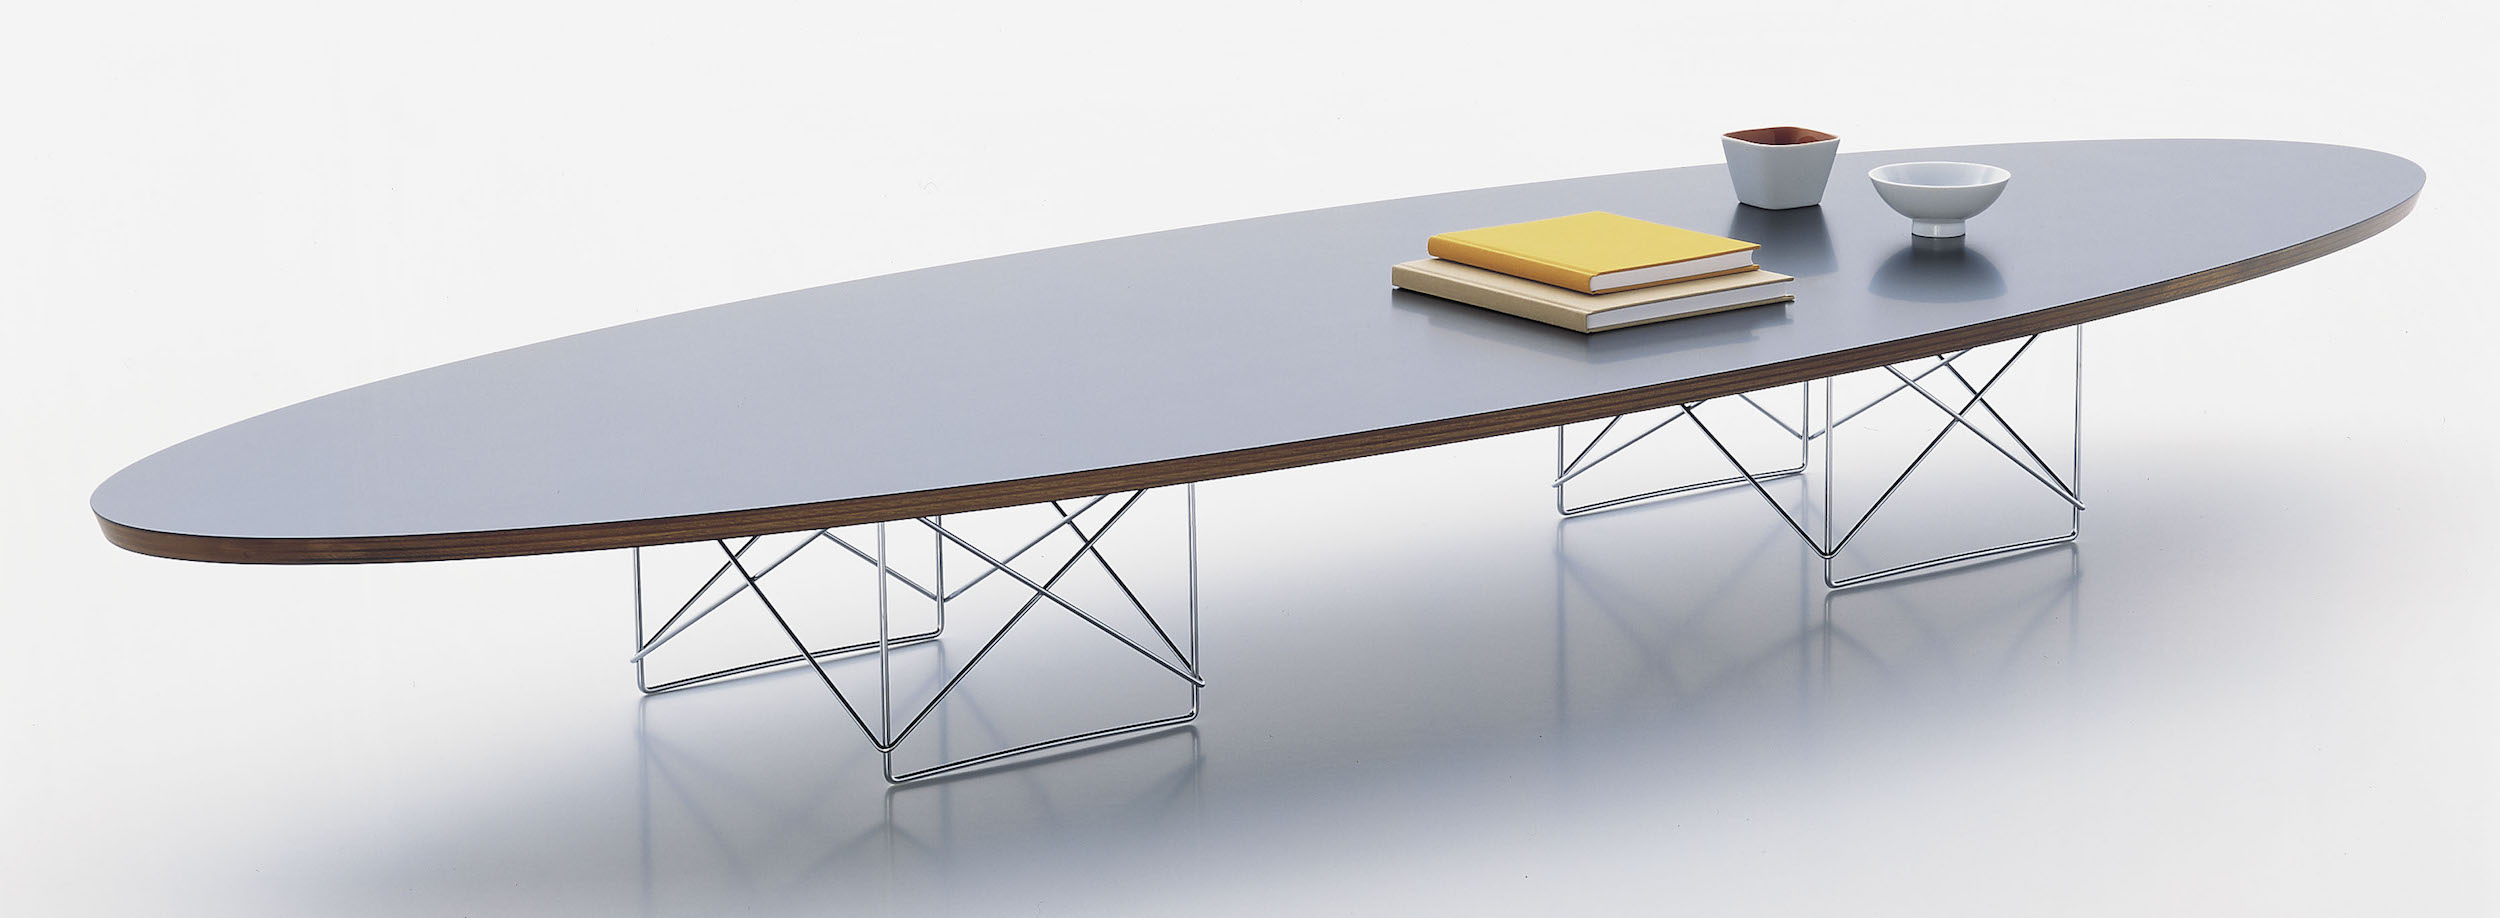 Vitra Table Basse Elliptique Etr Design Charles Et Ray